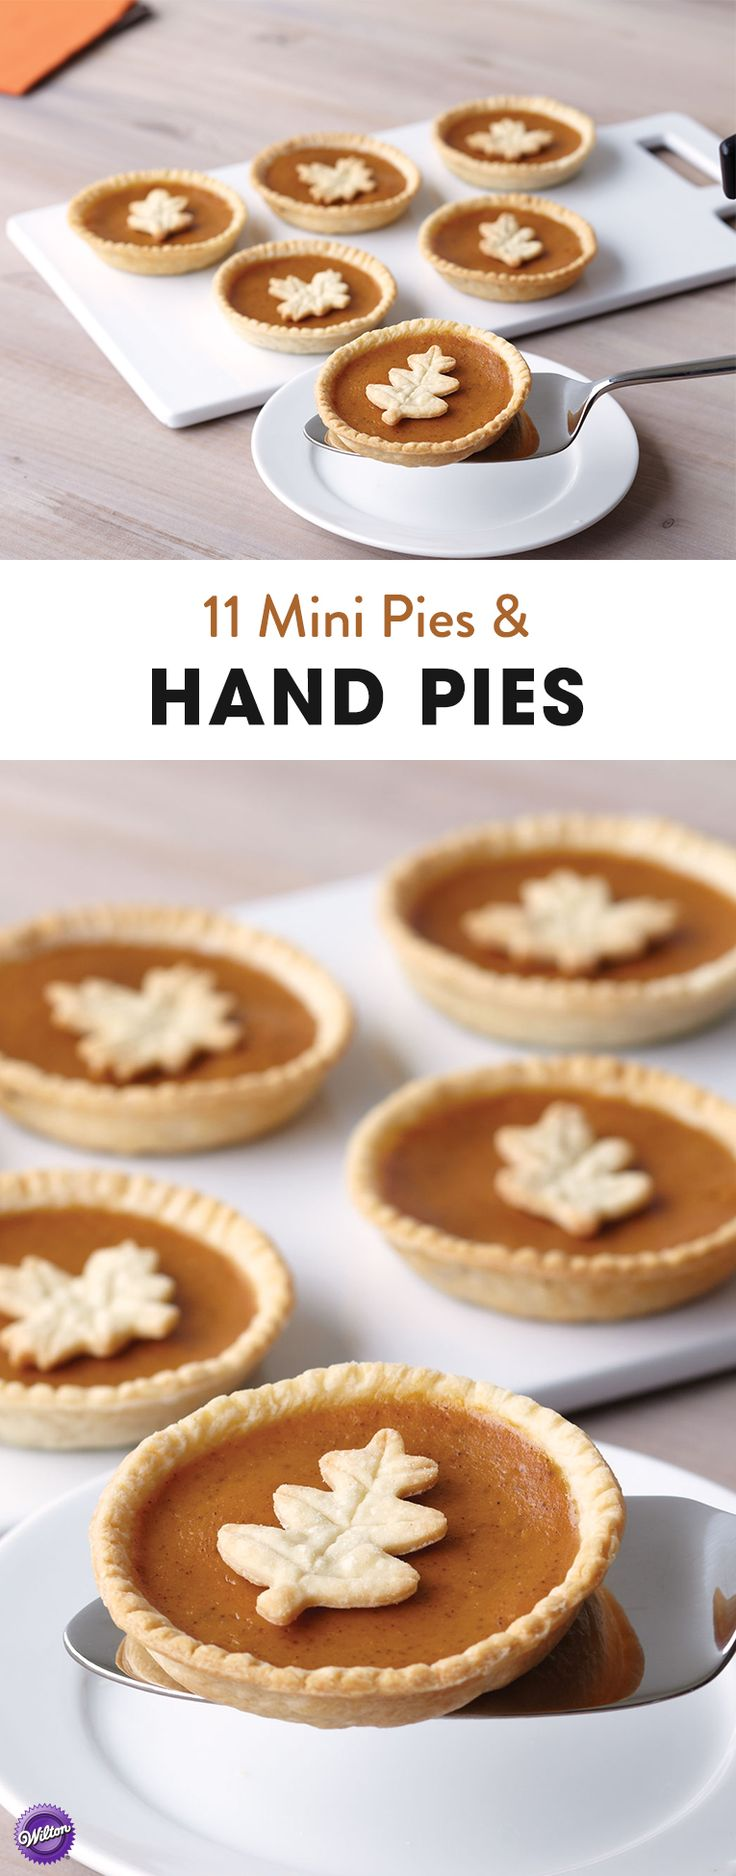 11 Mini Pie and Hand Pie Recipes - If you still want to satisfy your pie craving but don't feel like making a traditional pie, check out these 11 recipes for mini pies and hand pies including these cute mini pumpkin pies that are perfect for Thanksgiving!